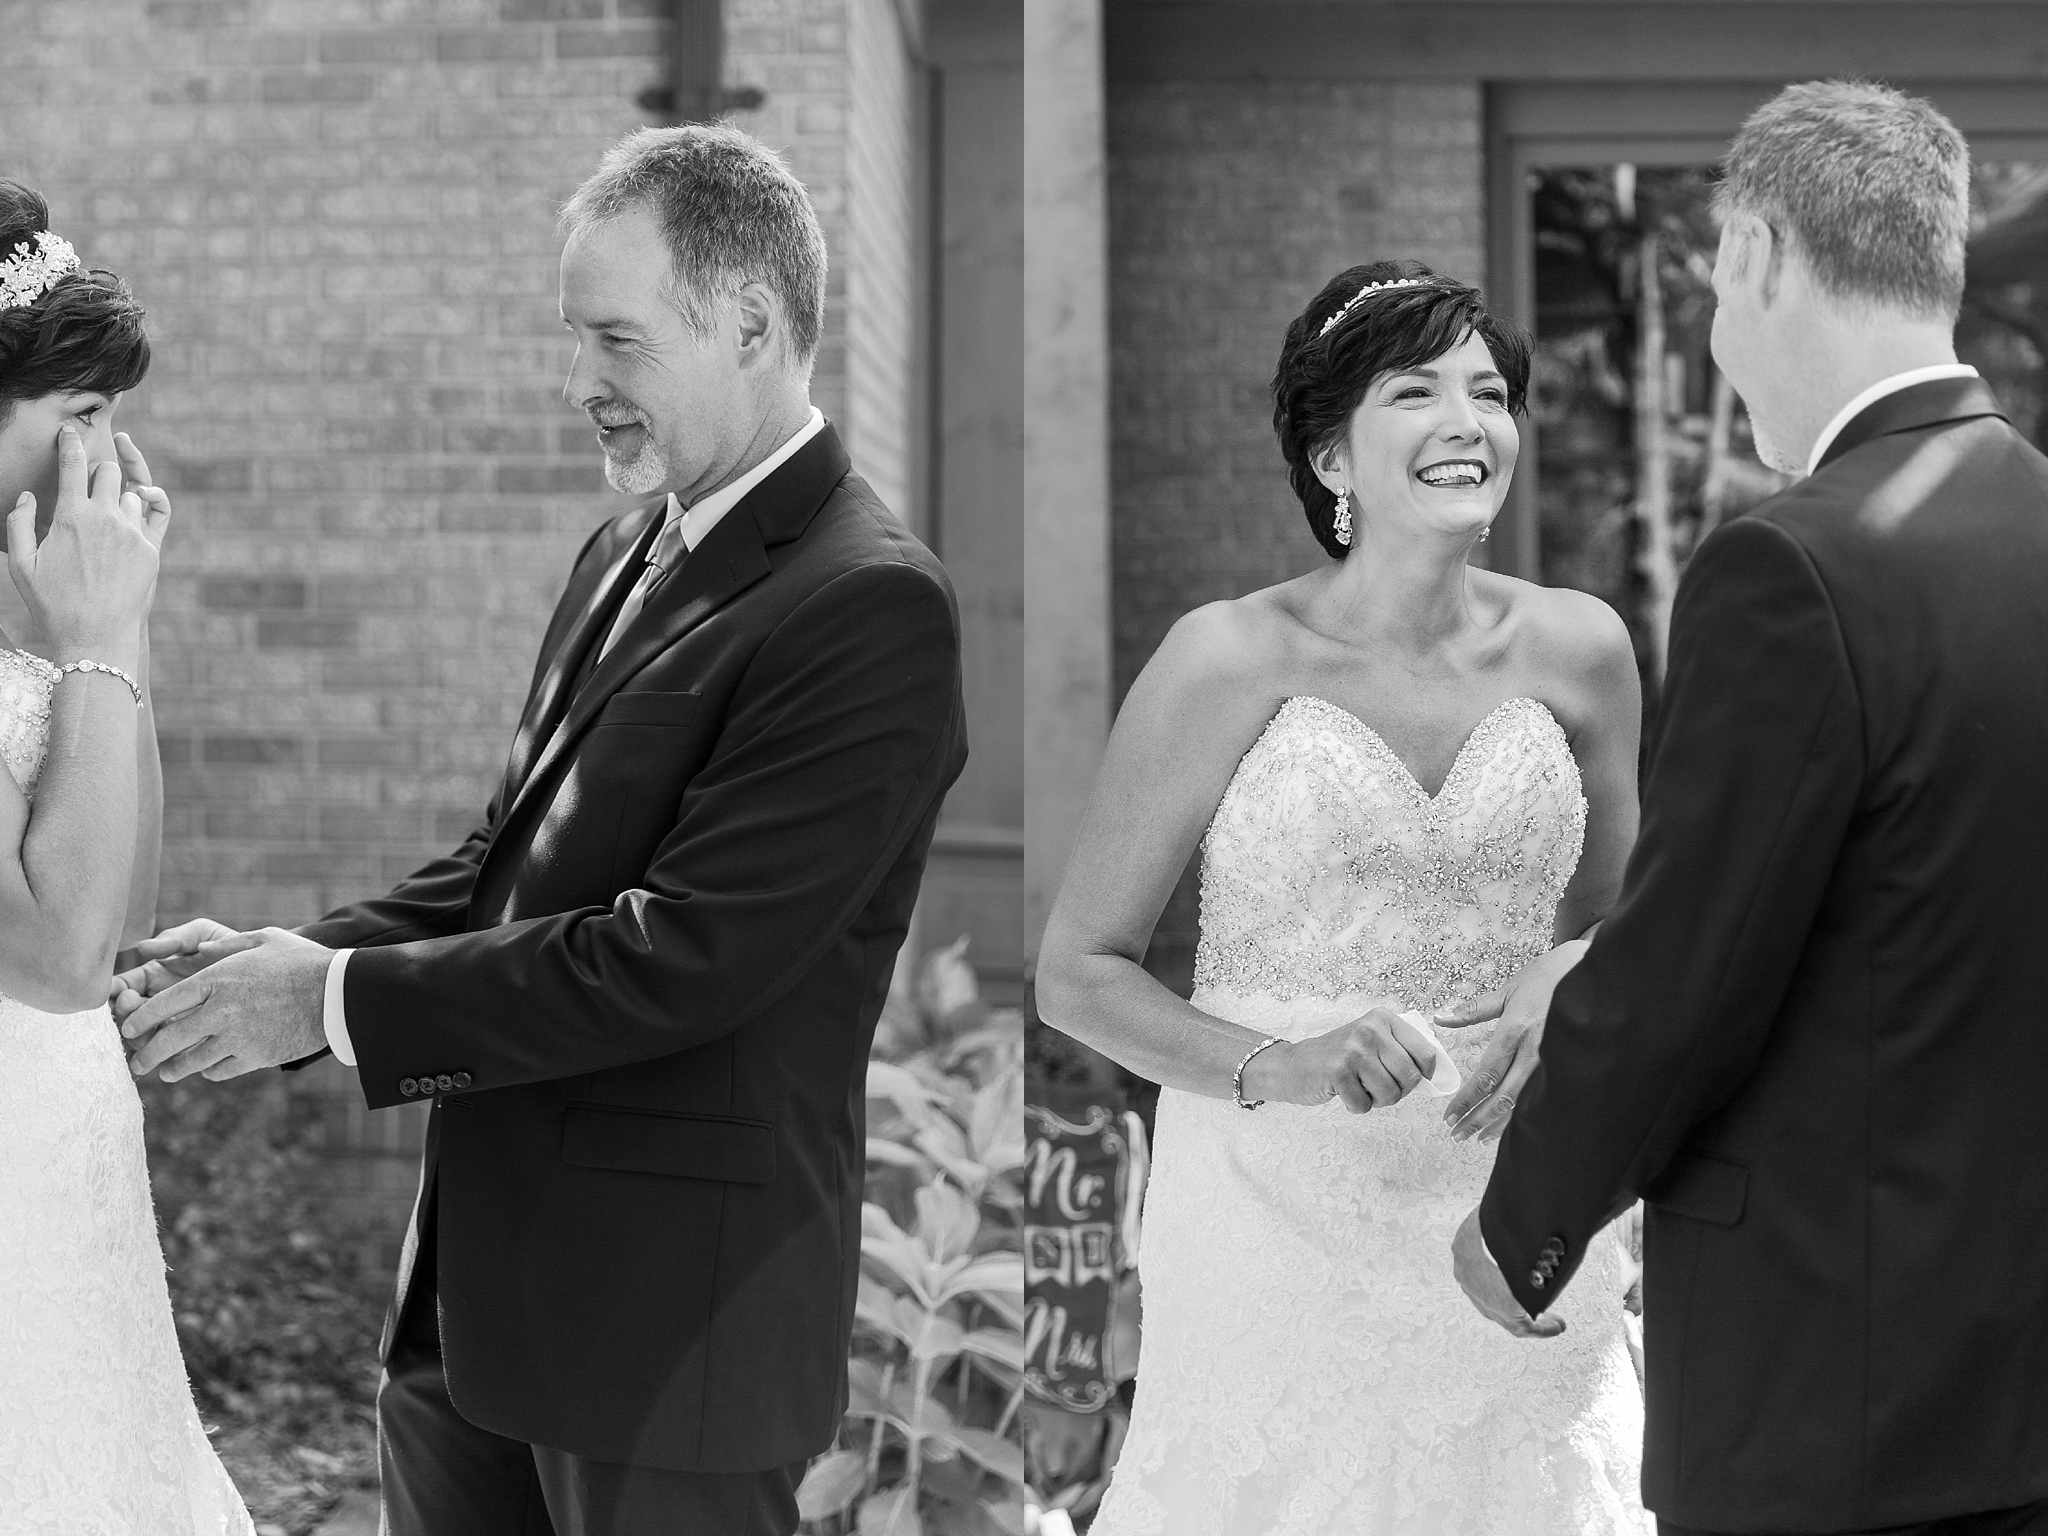 romantic-artful-candid-wedding-photos-in-detroit-lansing-ann-arbor-northern-michigan-and-chicago-by-courtney-carolyn-photography_0080.jpg